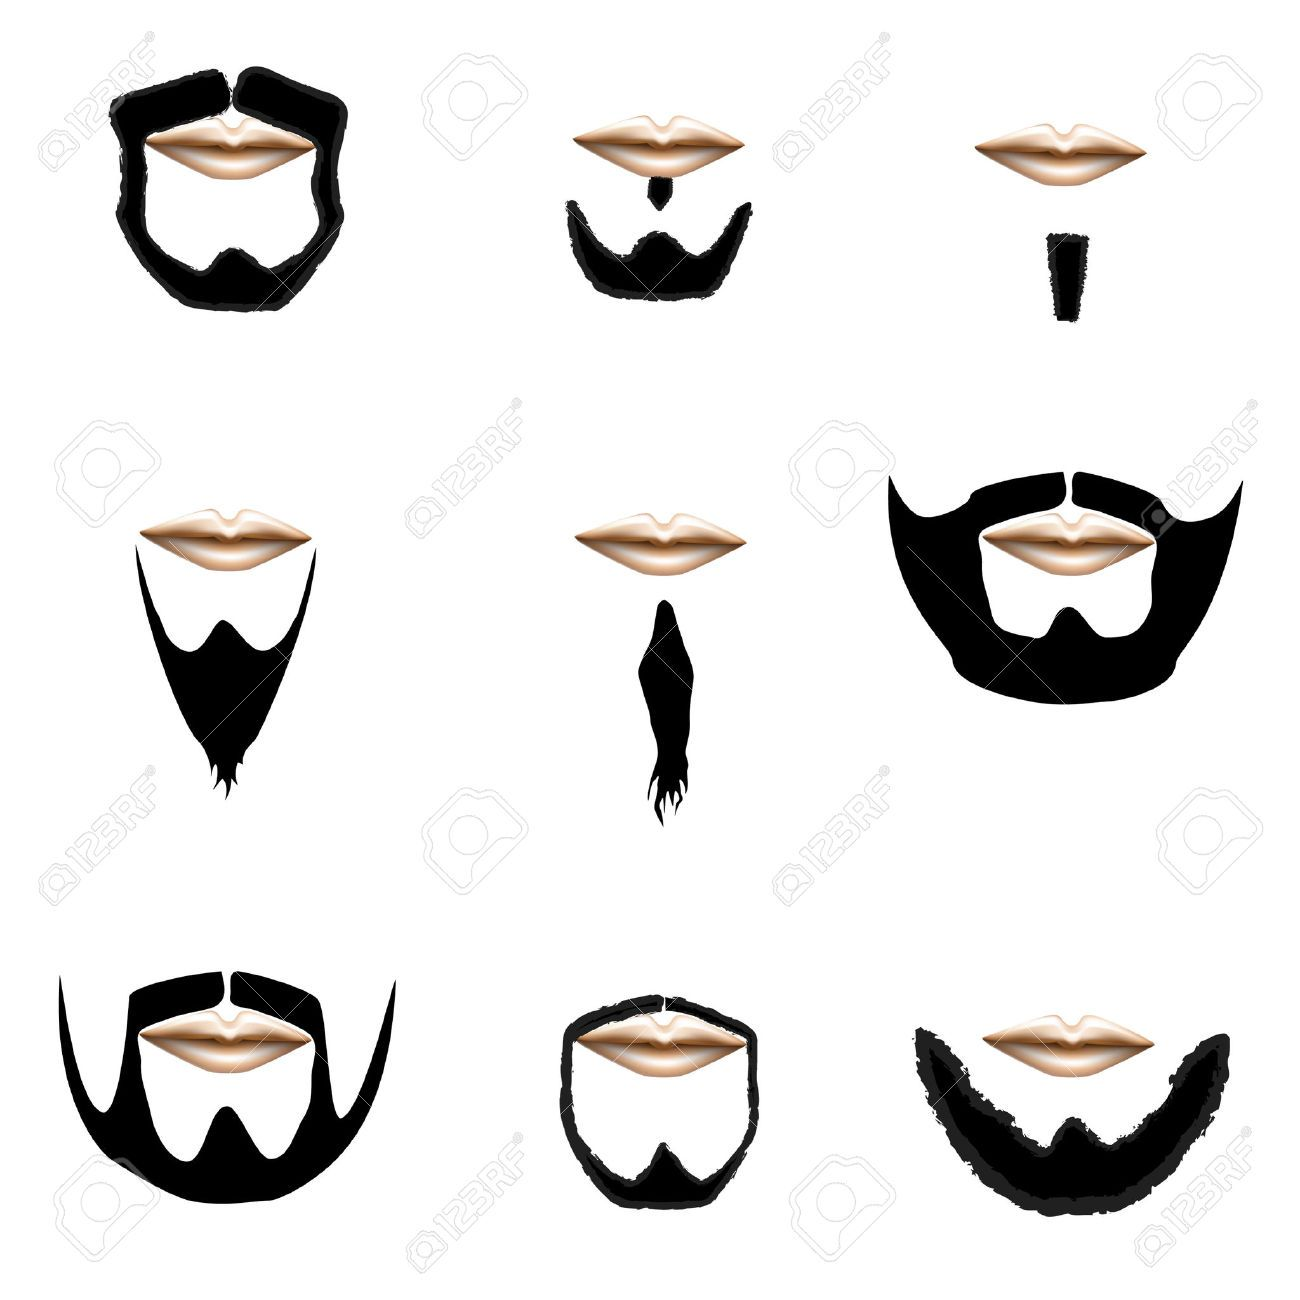 Beard clipart short beard.  and facial hair